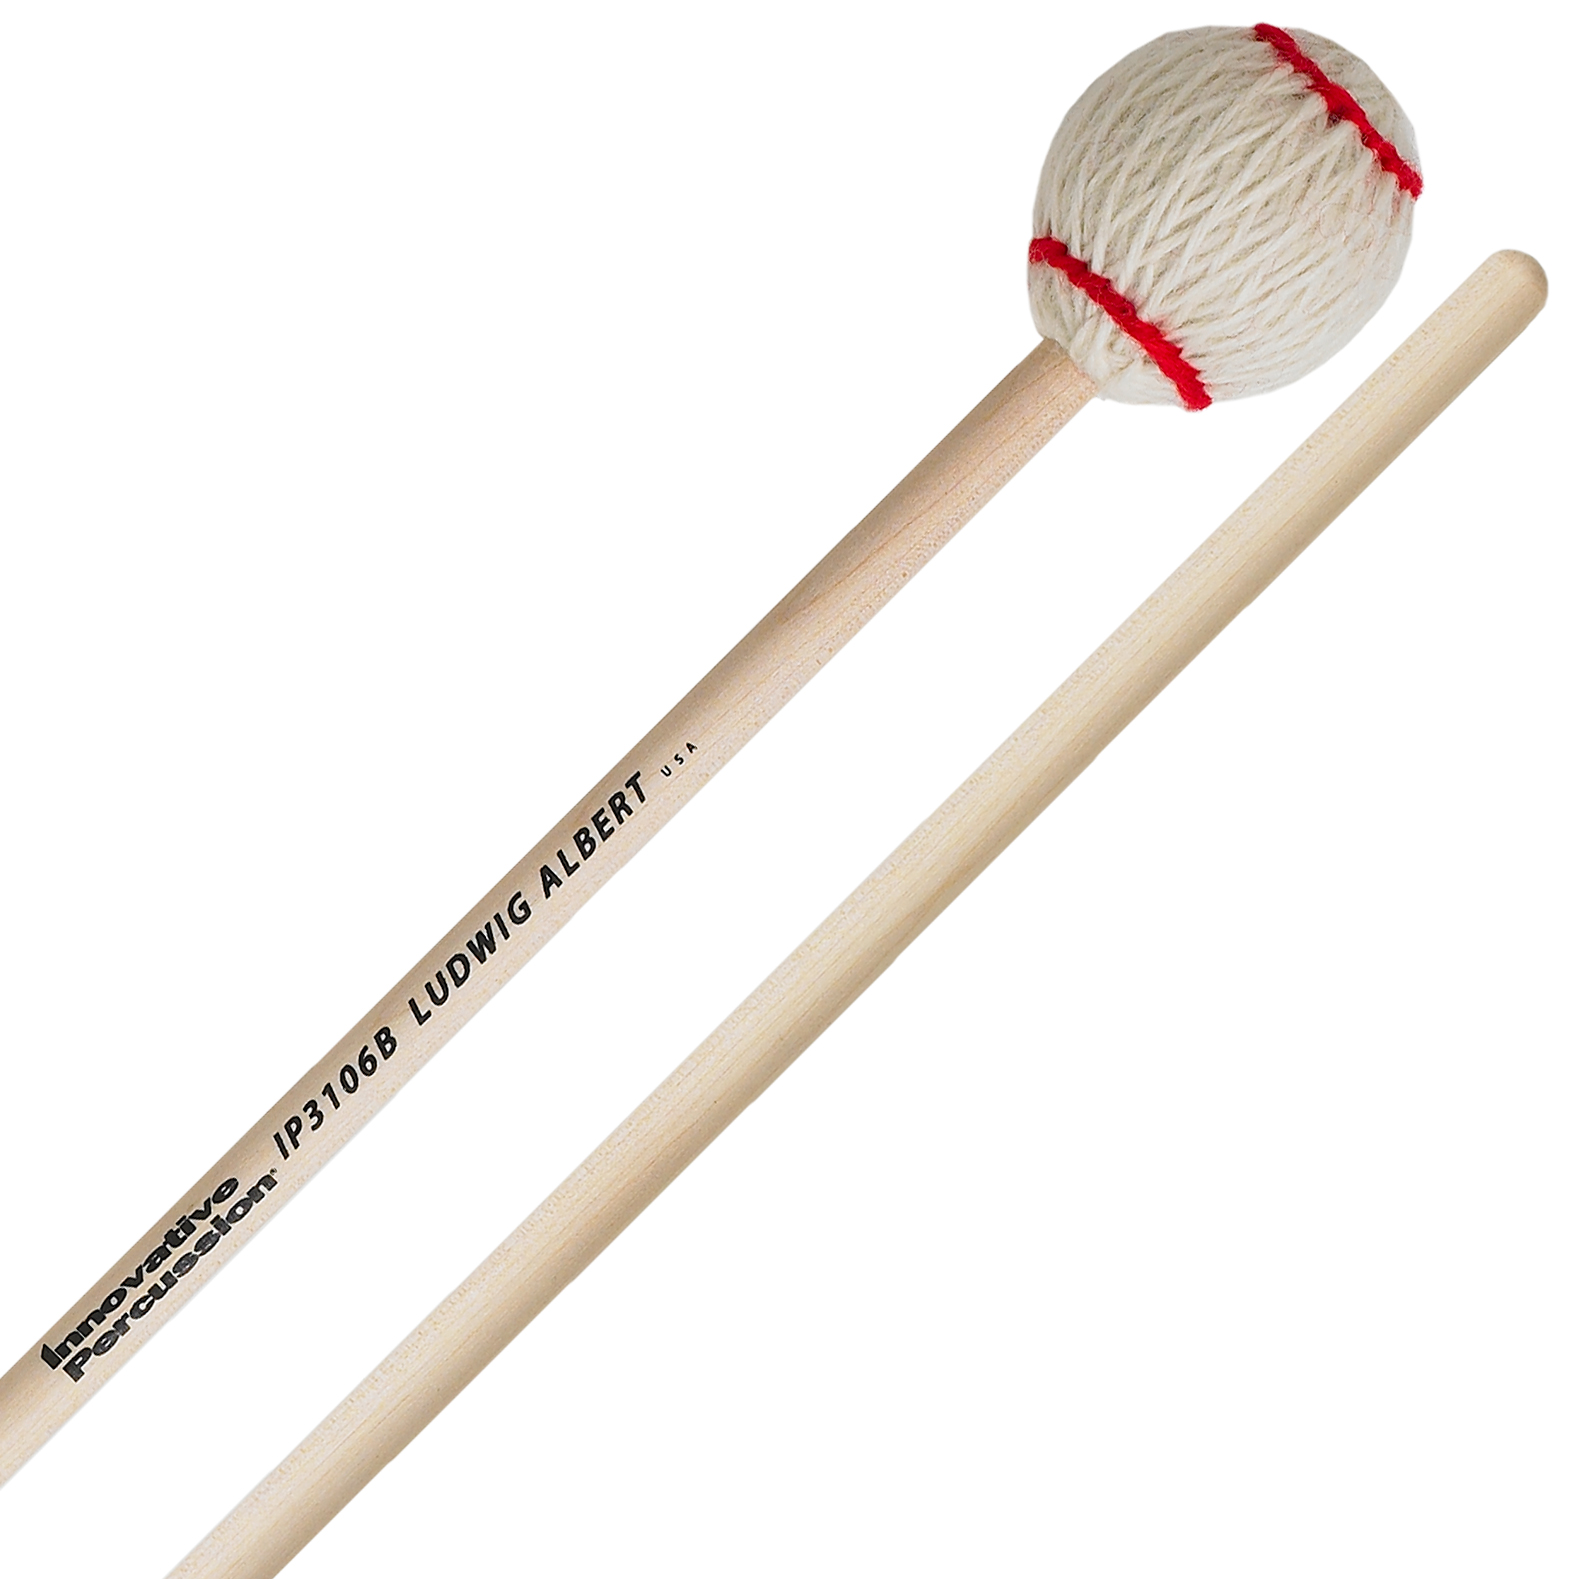 Innovative Percussion Ludwig Albert Signature Medium Hard Marimba Mallets with Birch Shafts